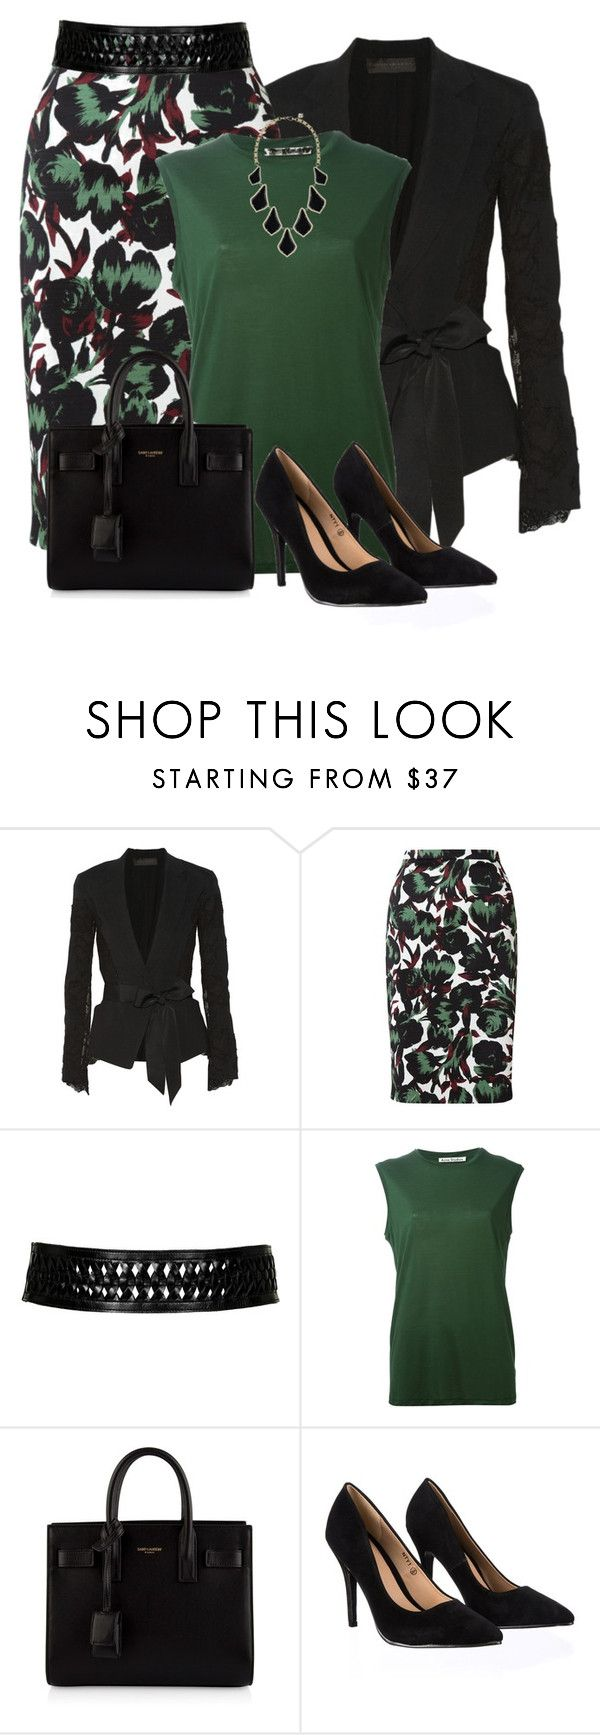 """Tulip Print Skirt"" by allysha-fa ❤ liked on Polyvore featuring Donna Karan, Jigsaw, Topshop, Acne Studios, Yves Saint Laurent, Lipsy and Kendra Scott"